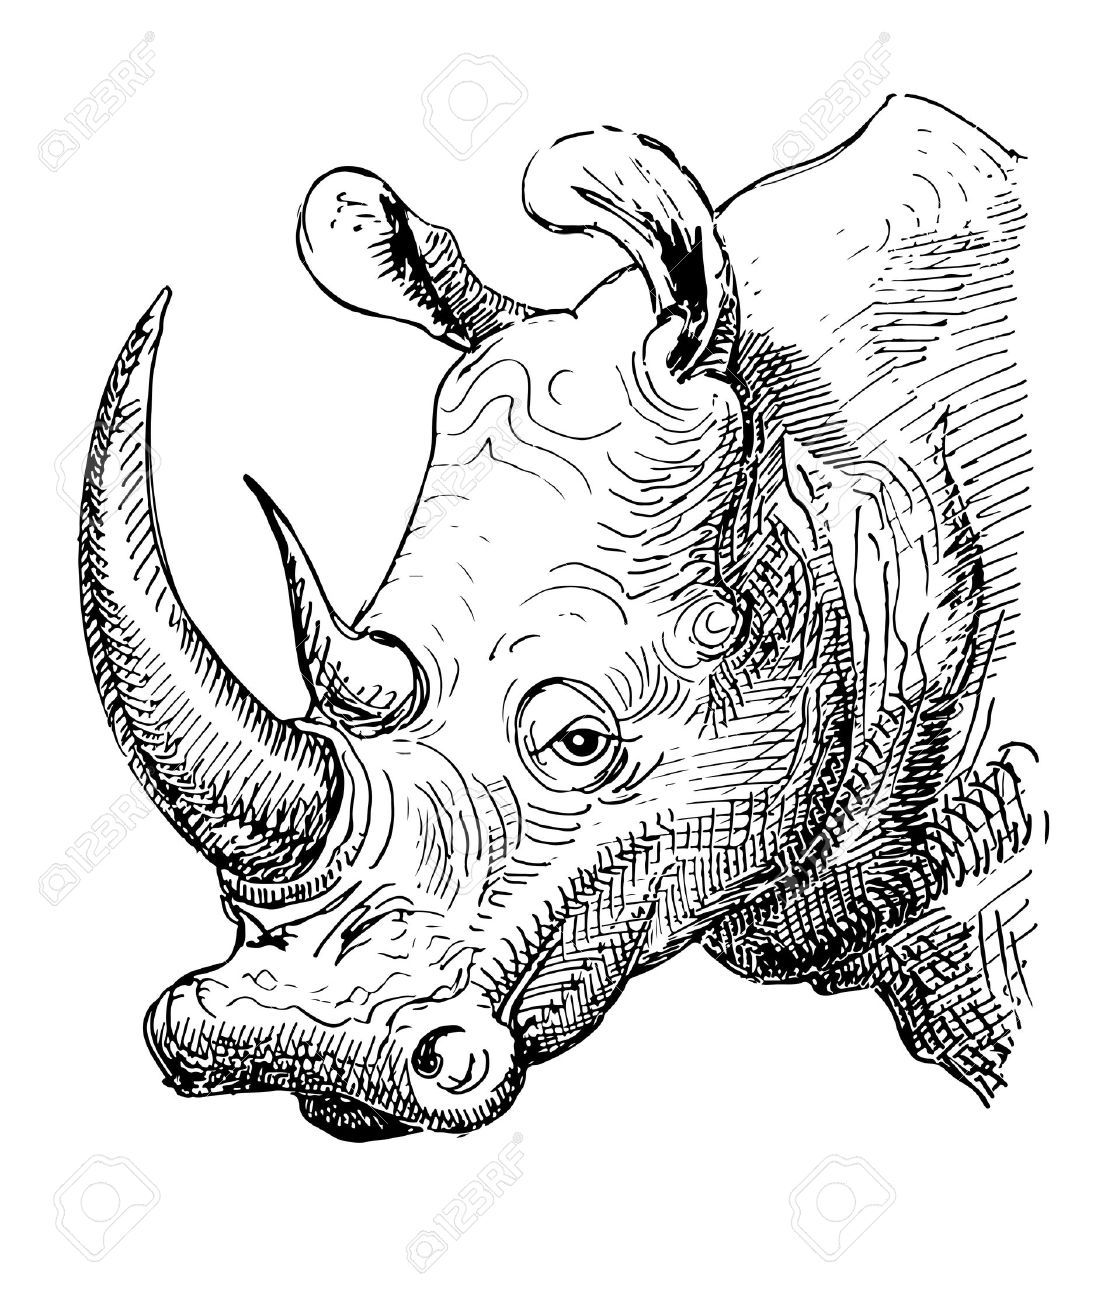 Vector Artwork Rhinoceros Sketch Black And White Drawing Of Realistic Head Animal Isolated On White Ba Animal Sketches Animal Drawings Cute Animal Drawings